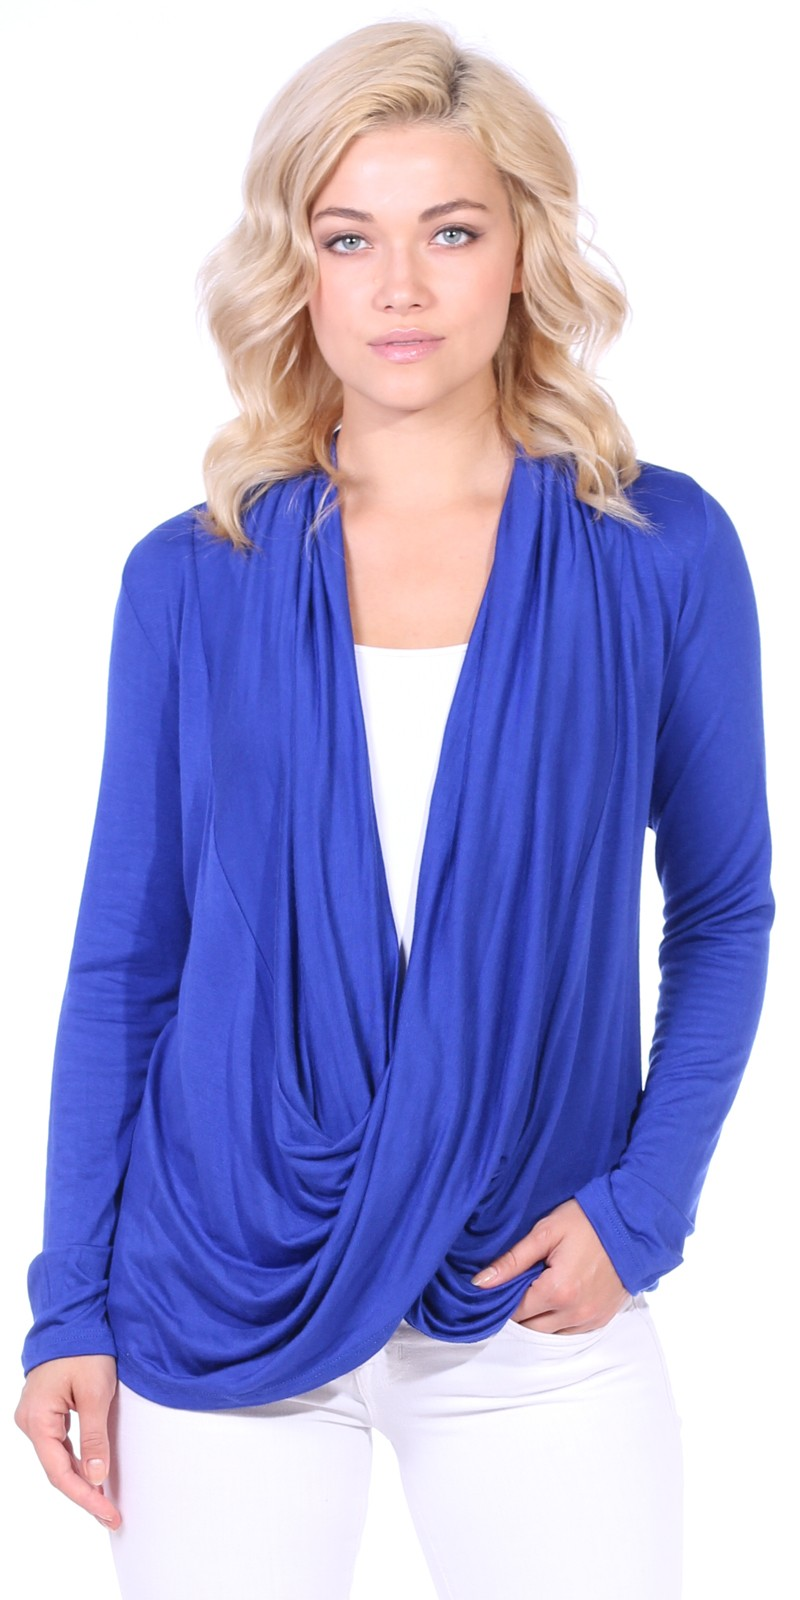 Long Sleeve Criss Cross Cardigan Also in Plus - Made In USA - Royal